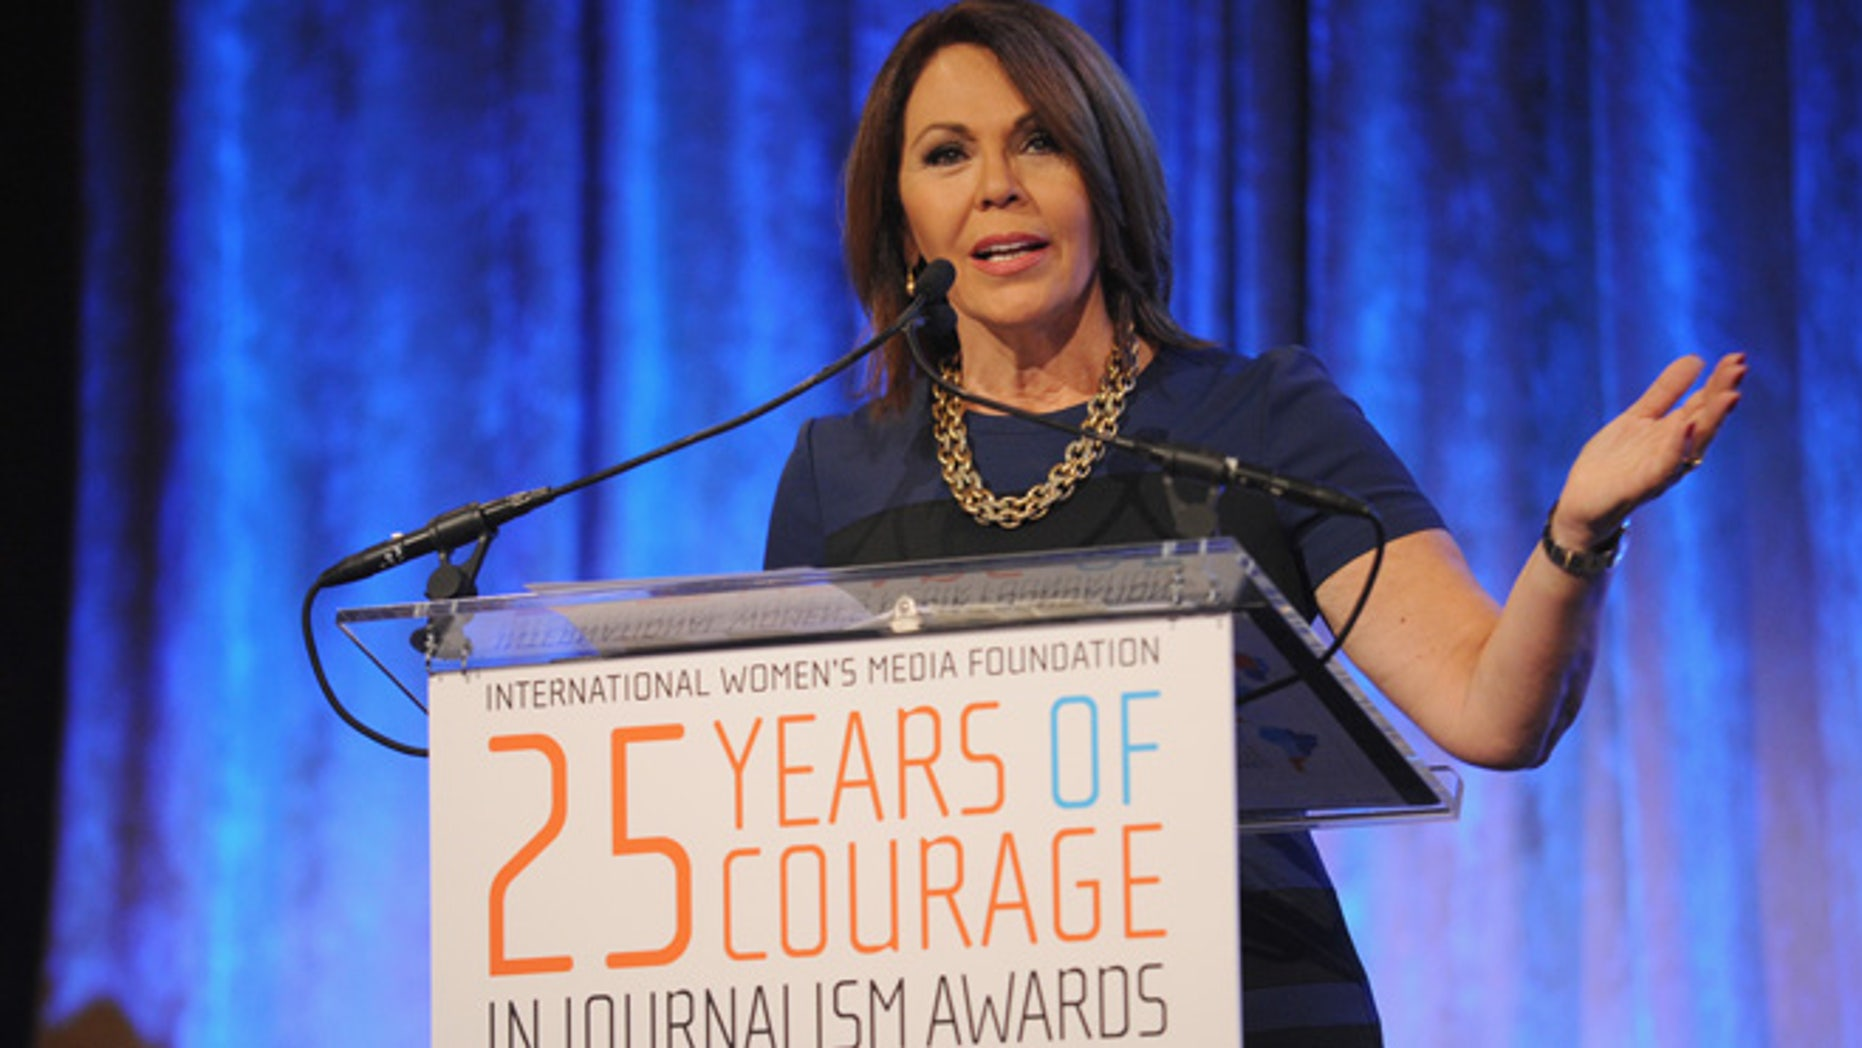 NEW YORK, NY - OCTOBER 22:  Journalist Maria Elena Salinas speaks onstage at the International Women's Media Foundation  Awards Luncheon at Cipriani 42nd Street on October 22, 2014 in New York City.  (Photo by Bryan Bedder/Getty Images for IWMF)